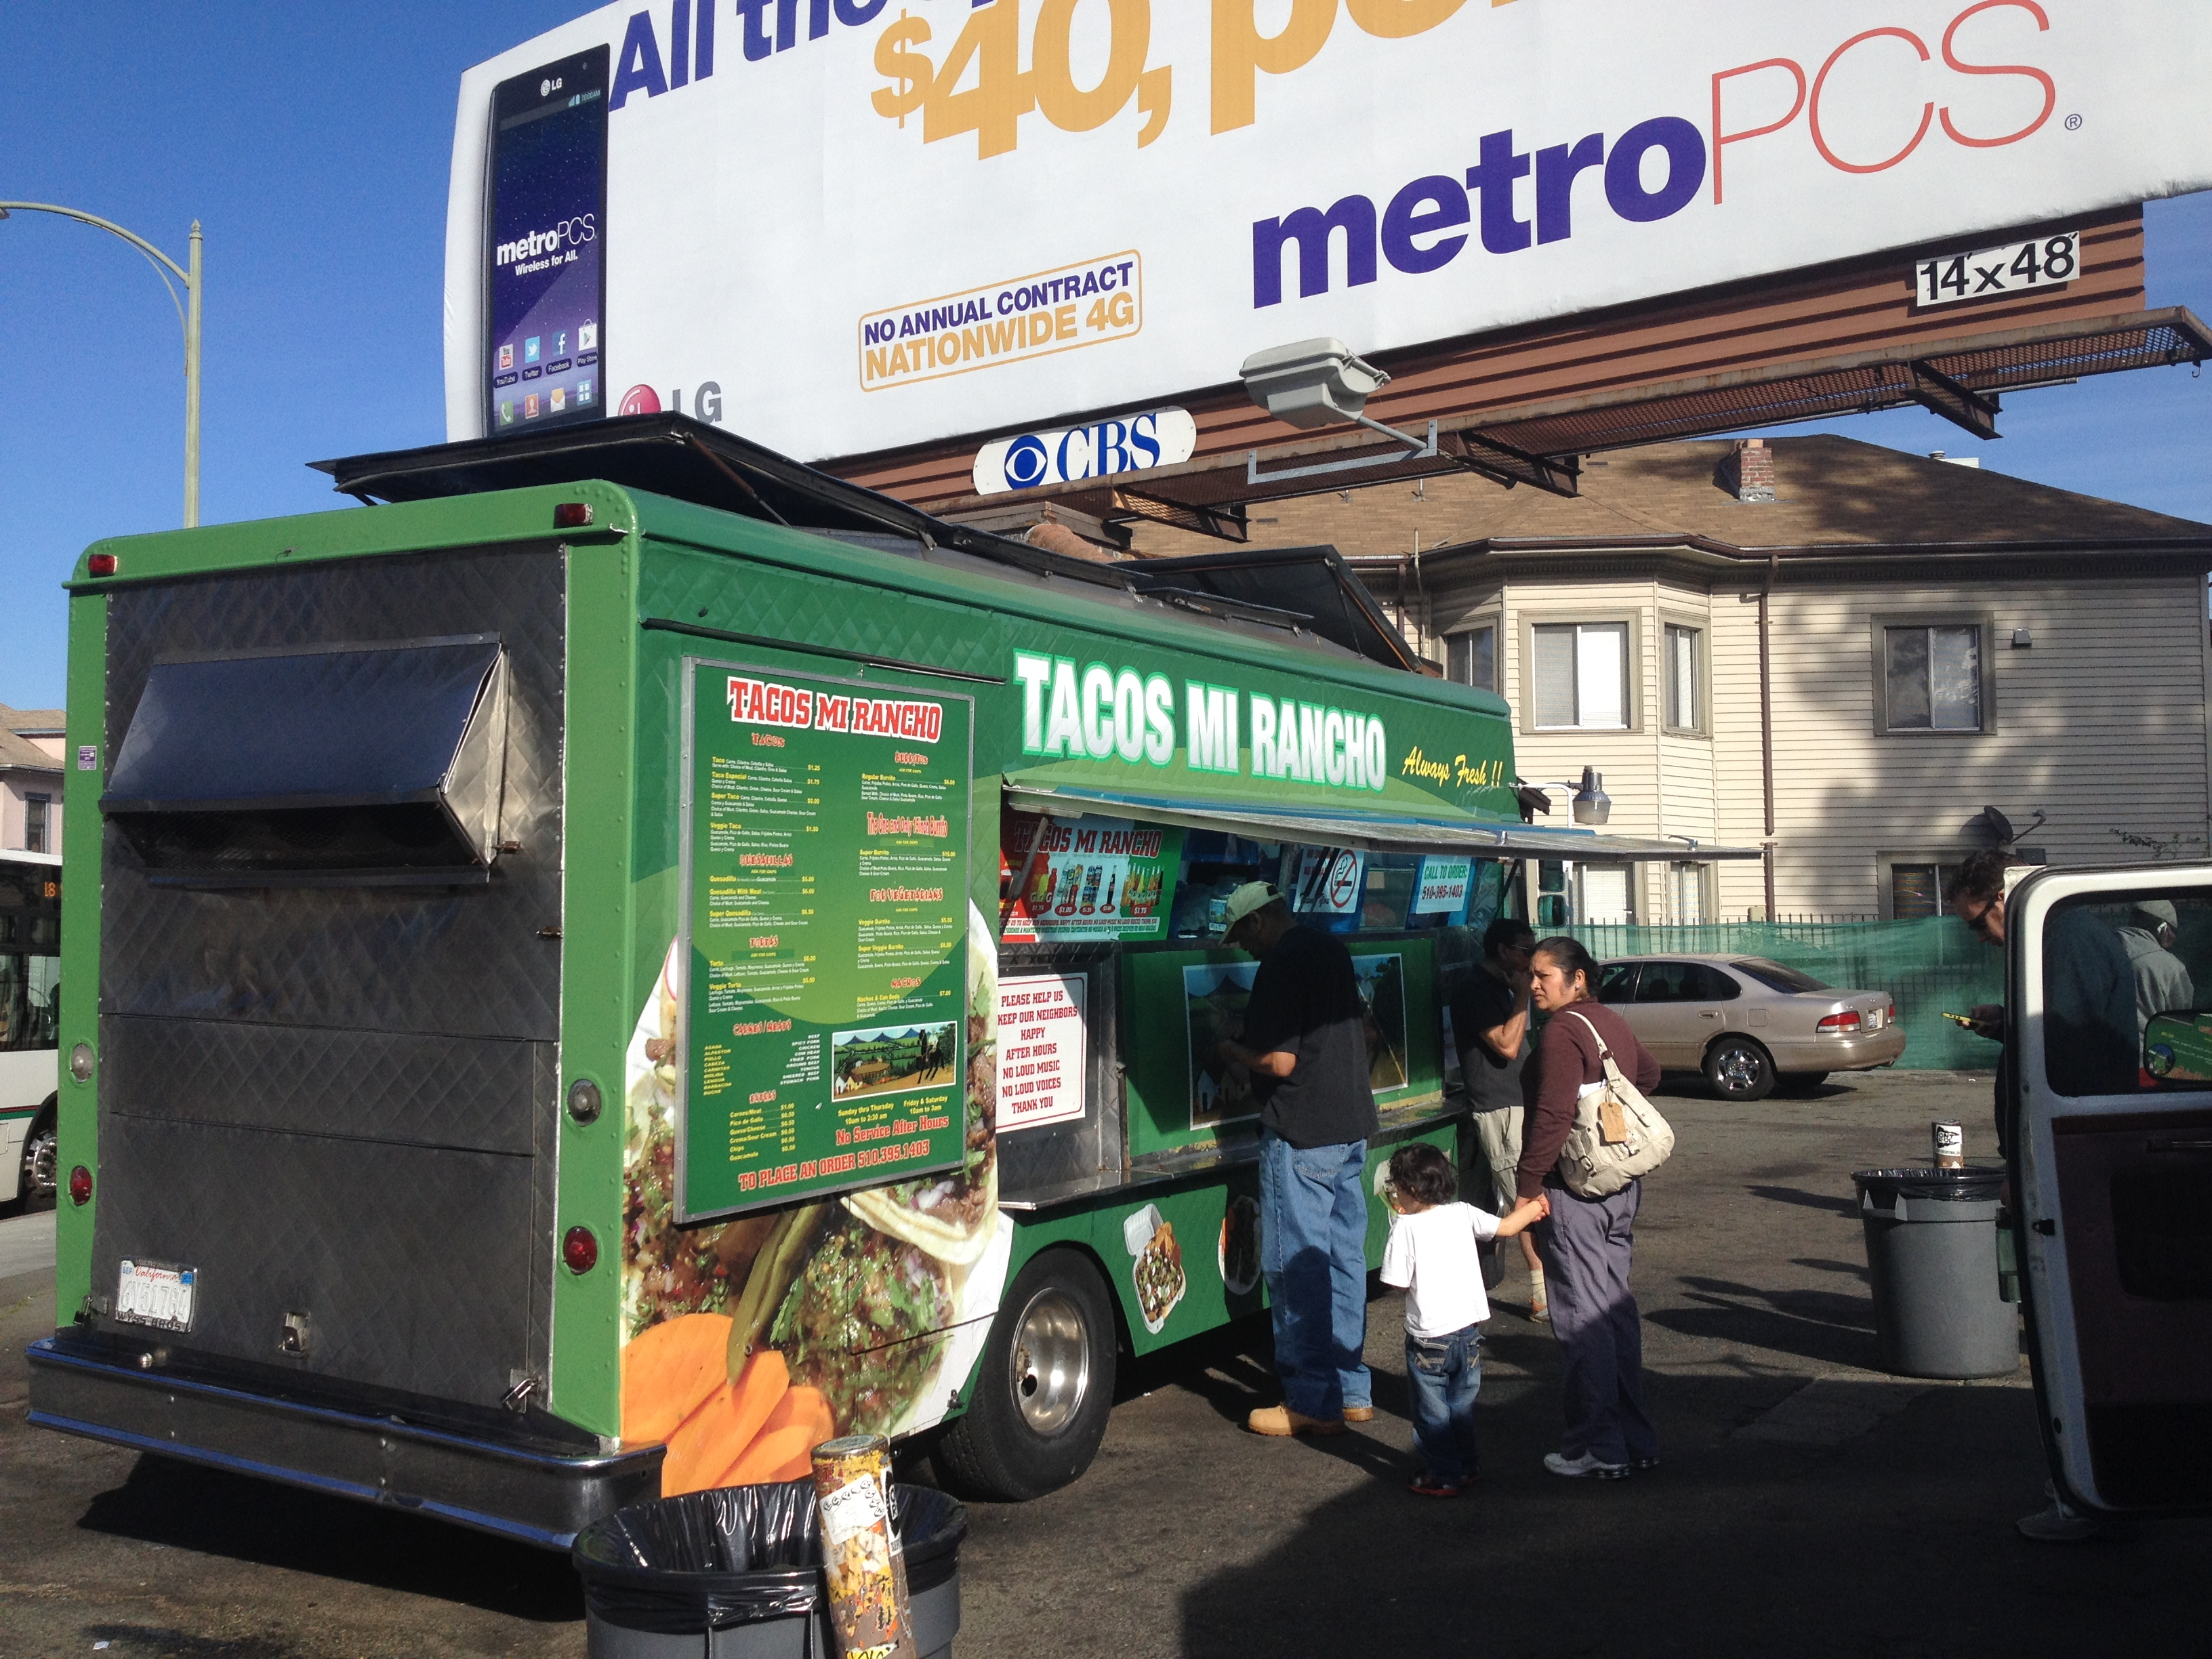 This taco truck sits within about 20 feet of an Arisebitcoin billboard in Oakland at the intersection of International Boulevard and 1st Avenue.